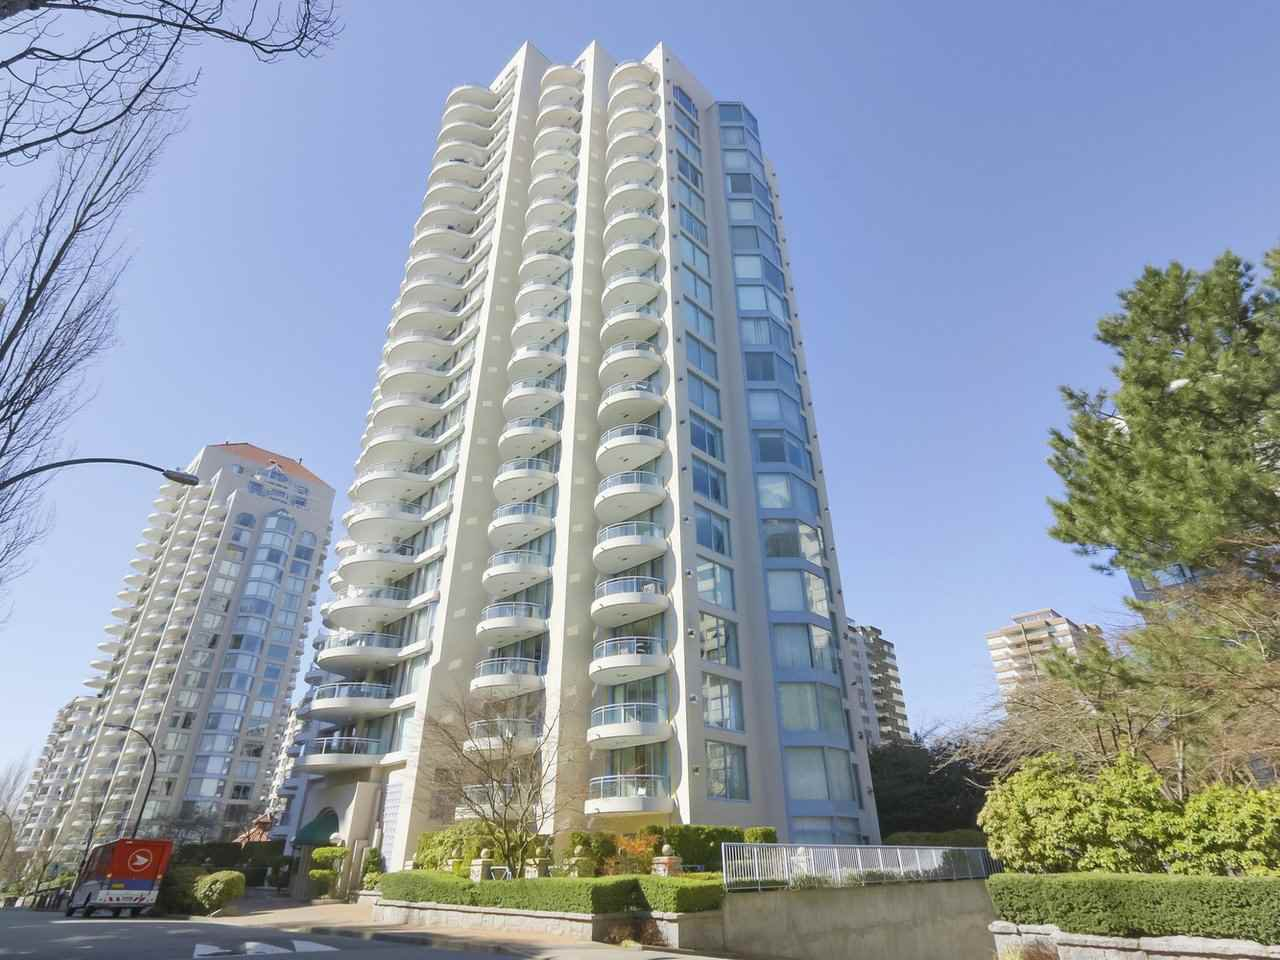 Main Photo: 803 719 PRINCESS STREET in New Westminster: Uptown NW Condo for sale : MLS®# R2417616